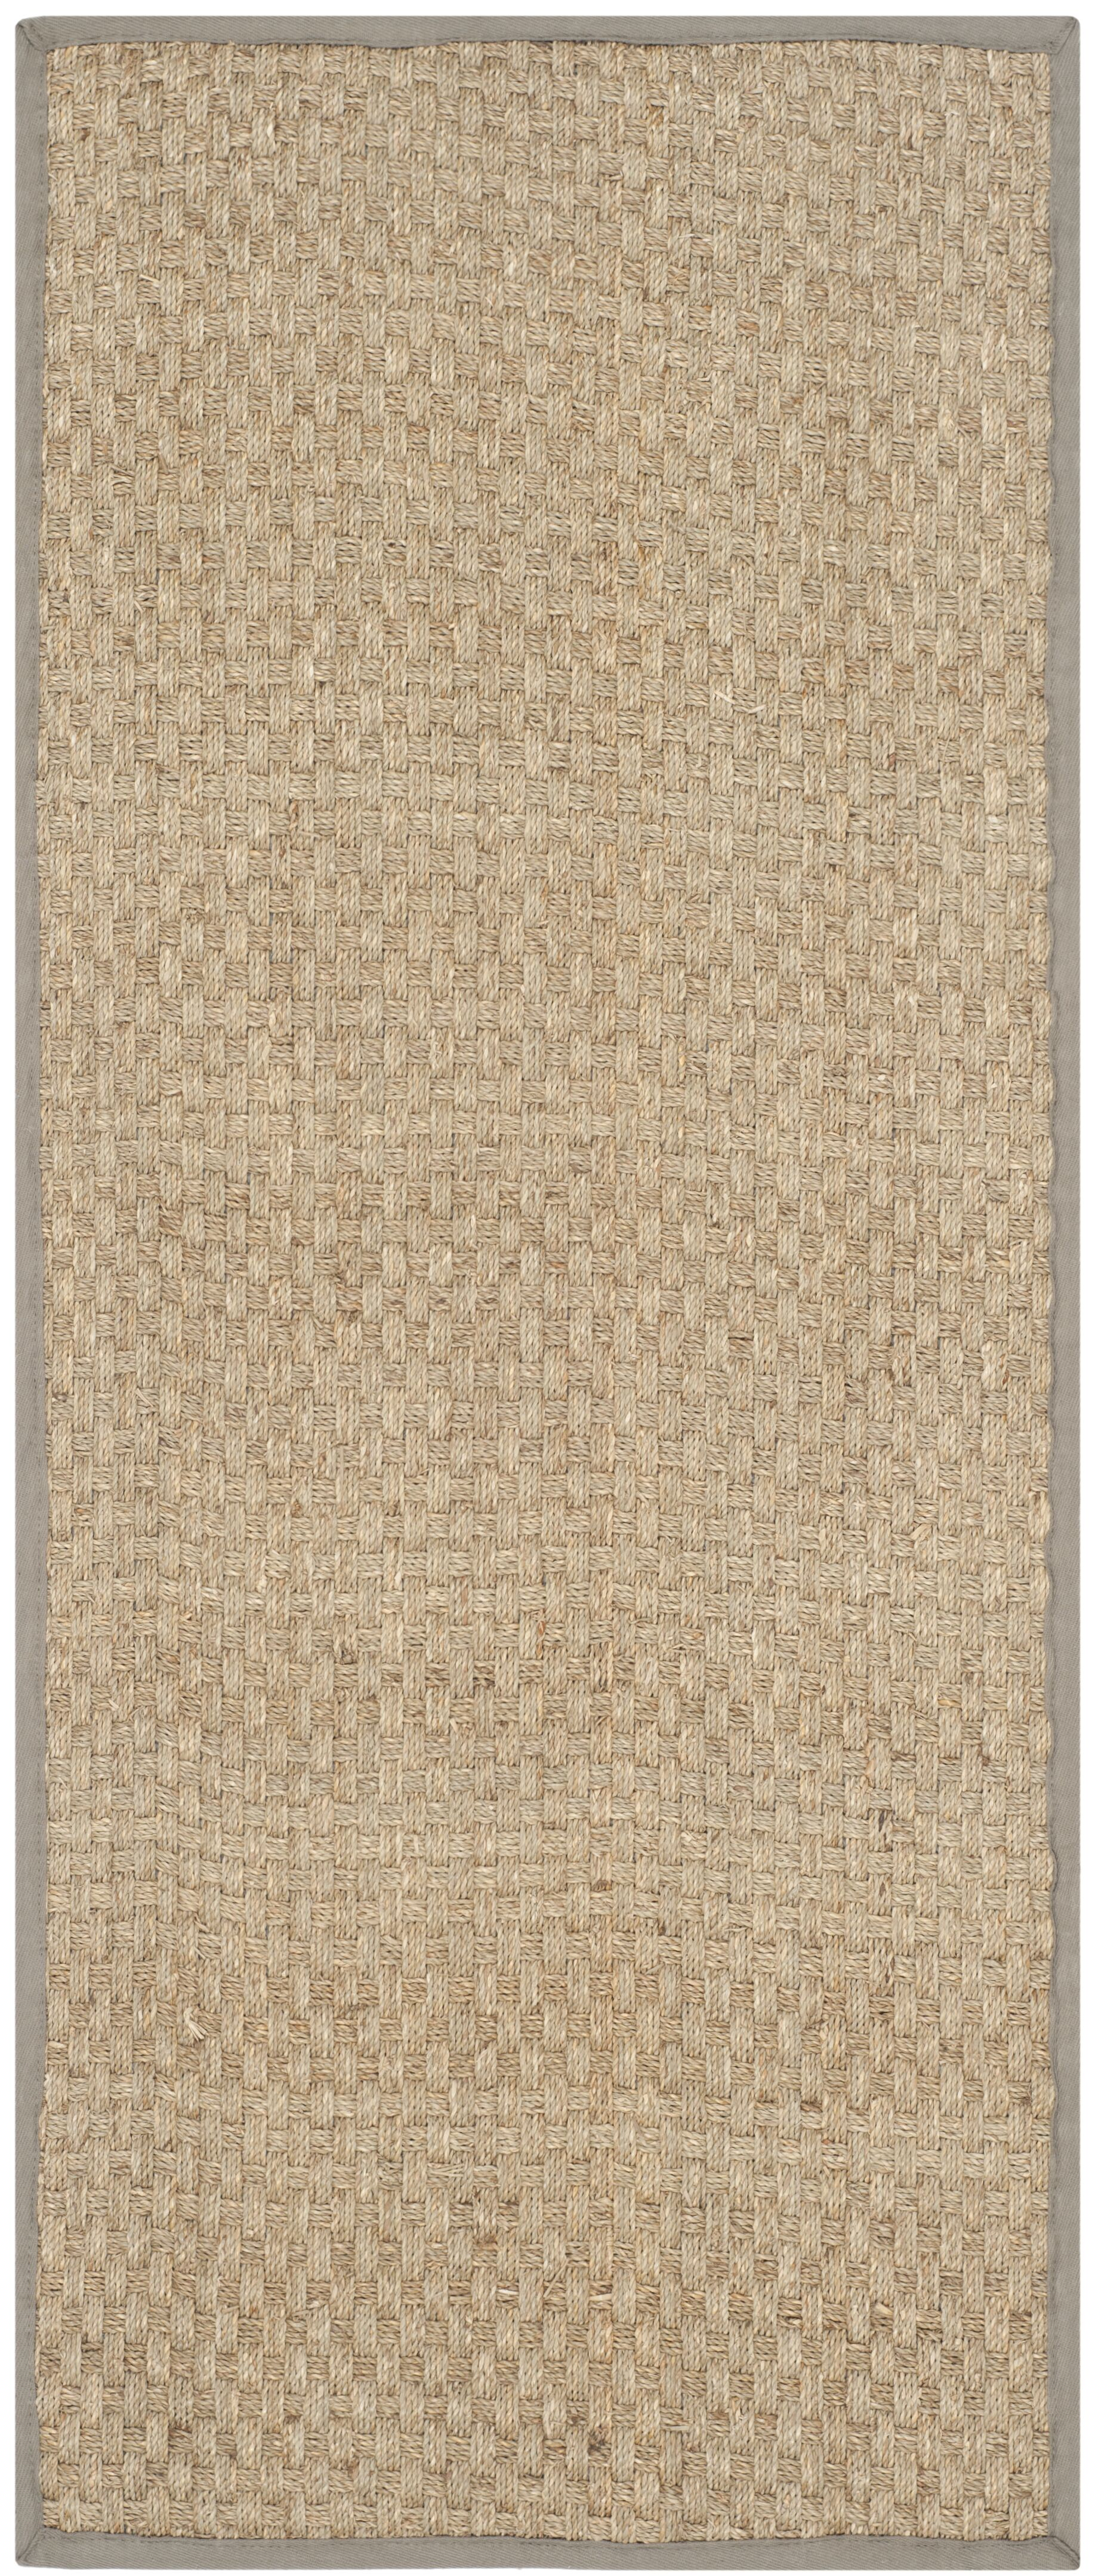 Richmond Natural/Brown Area Rug Rug Size: Runner 2'6